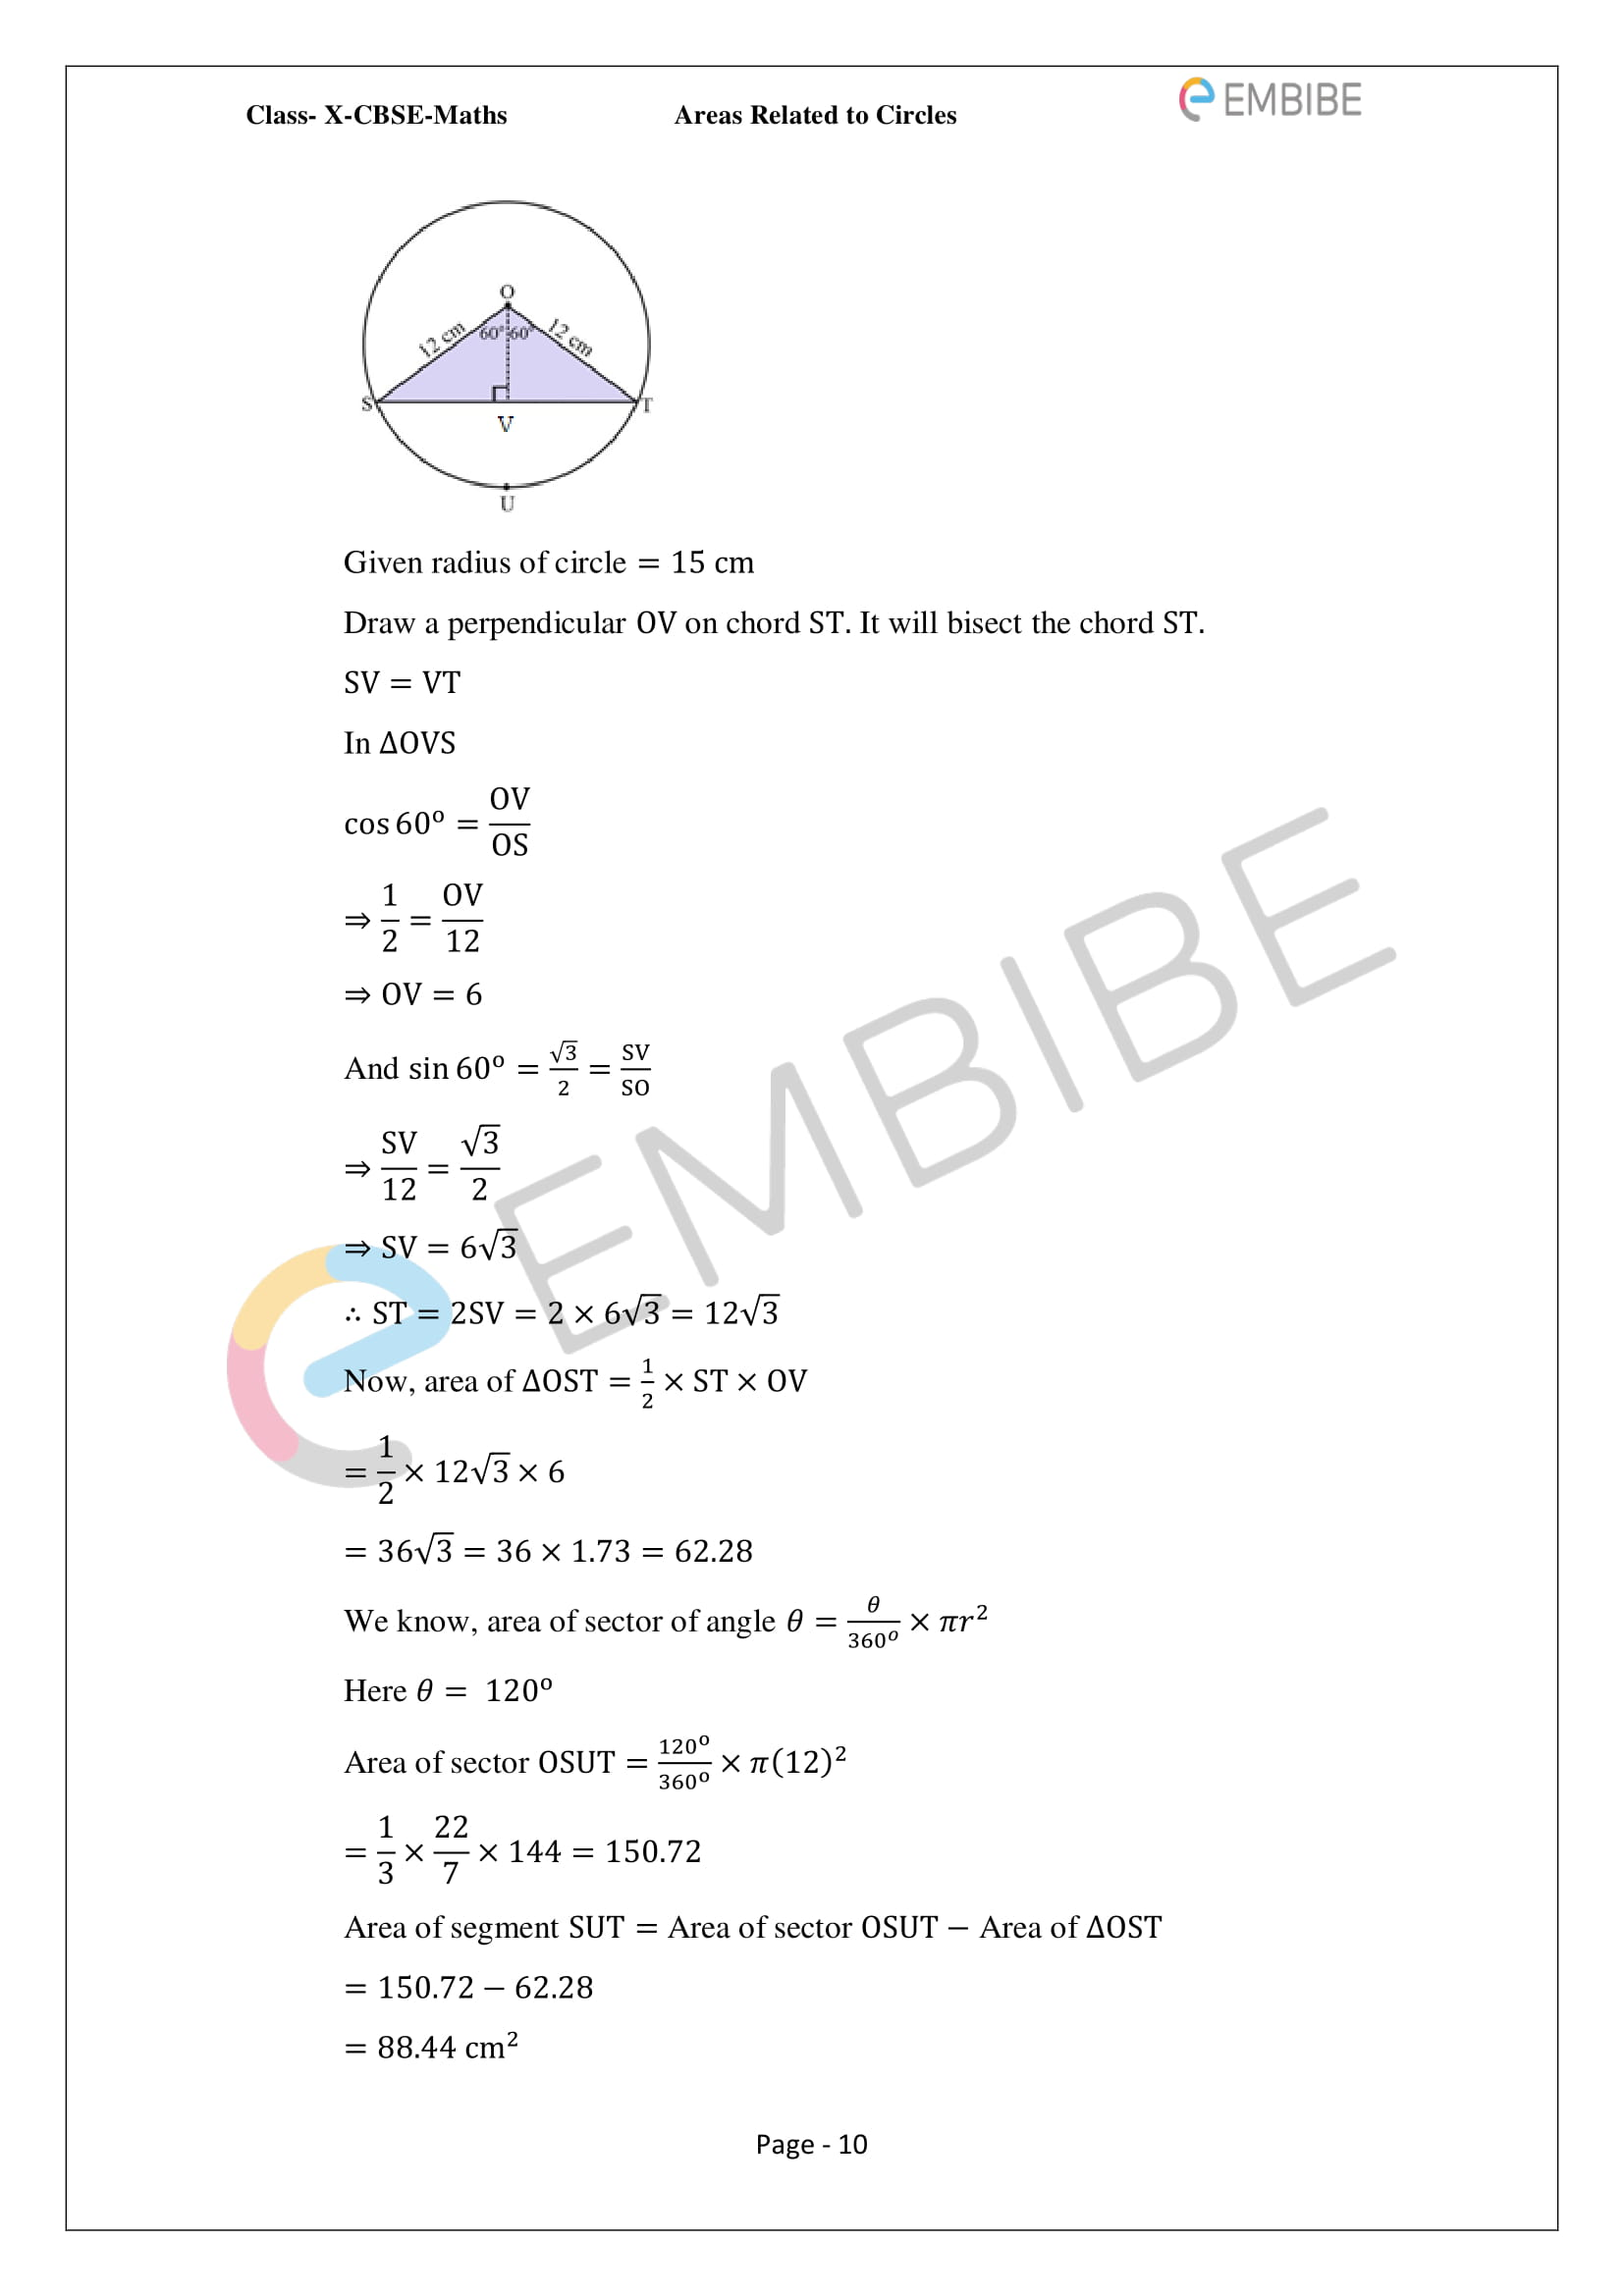 CBSE NCERT Solutions For Class 10 Maths Chapter 12 - Areas Related To Circle - 10